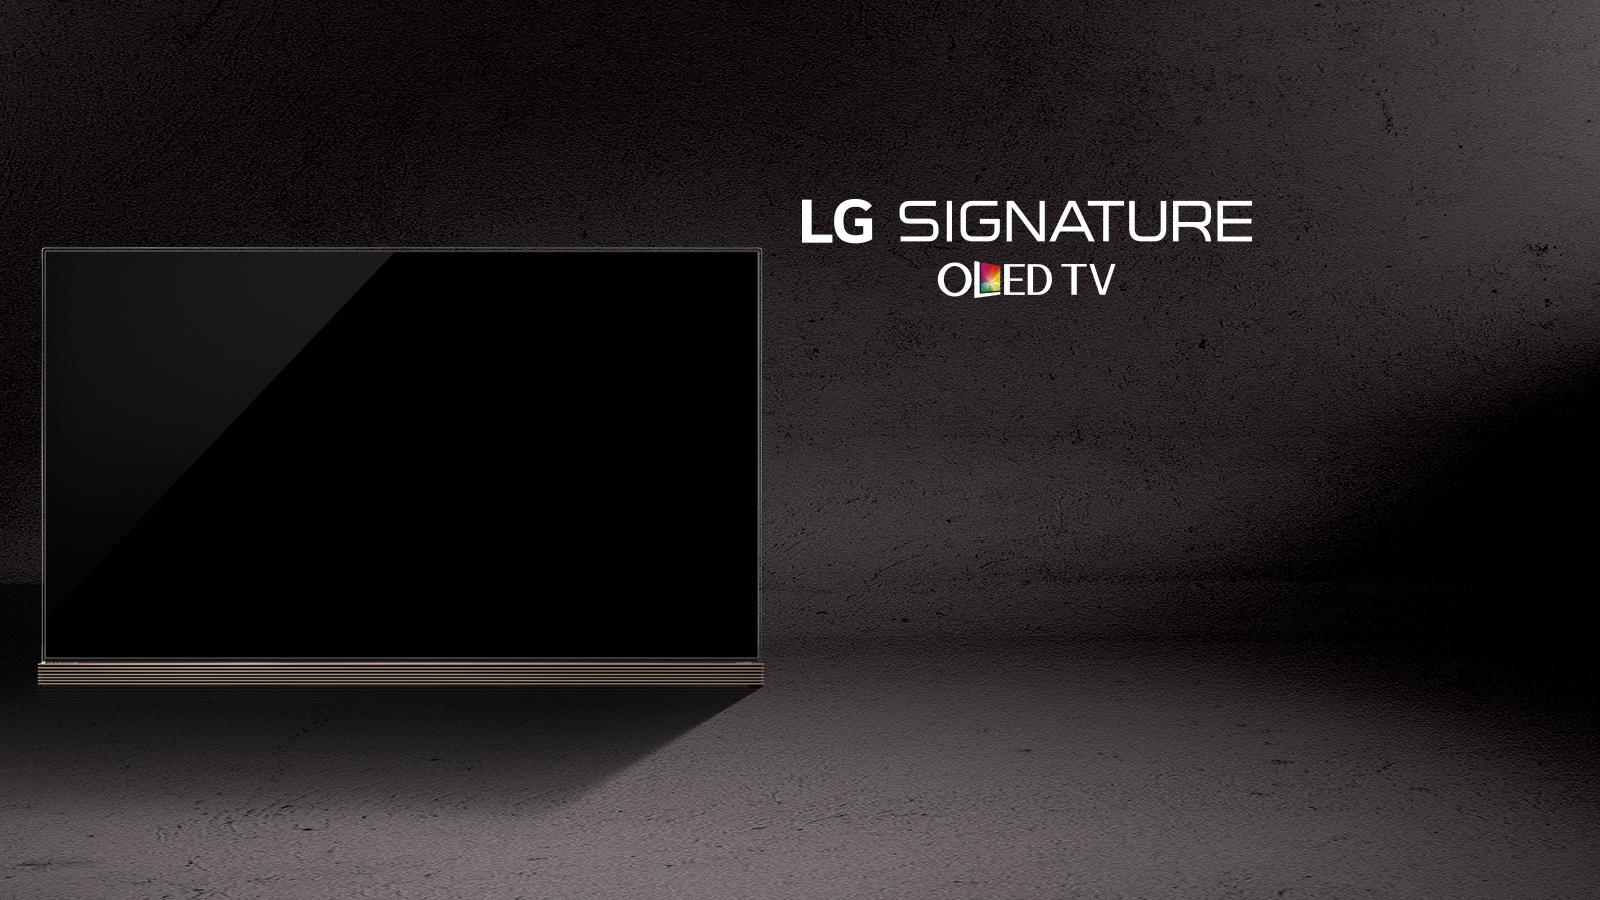 lg oled65g6p lg signature g6 65 inch oled 4k smart tv lg usa. Black Bedroom Furniture Sets. Home Design Ideas